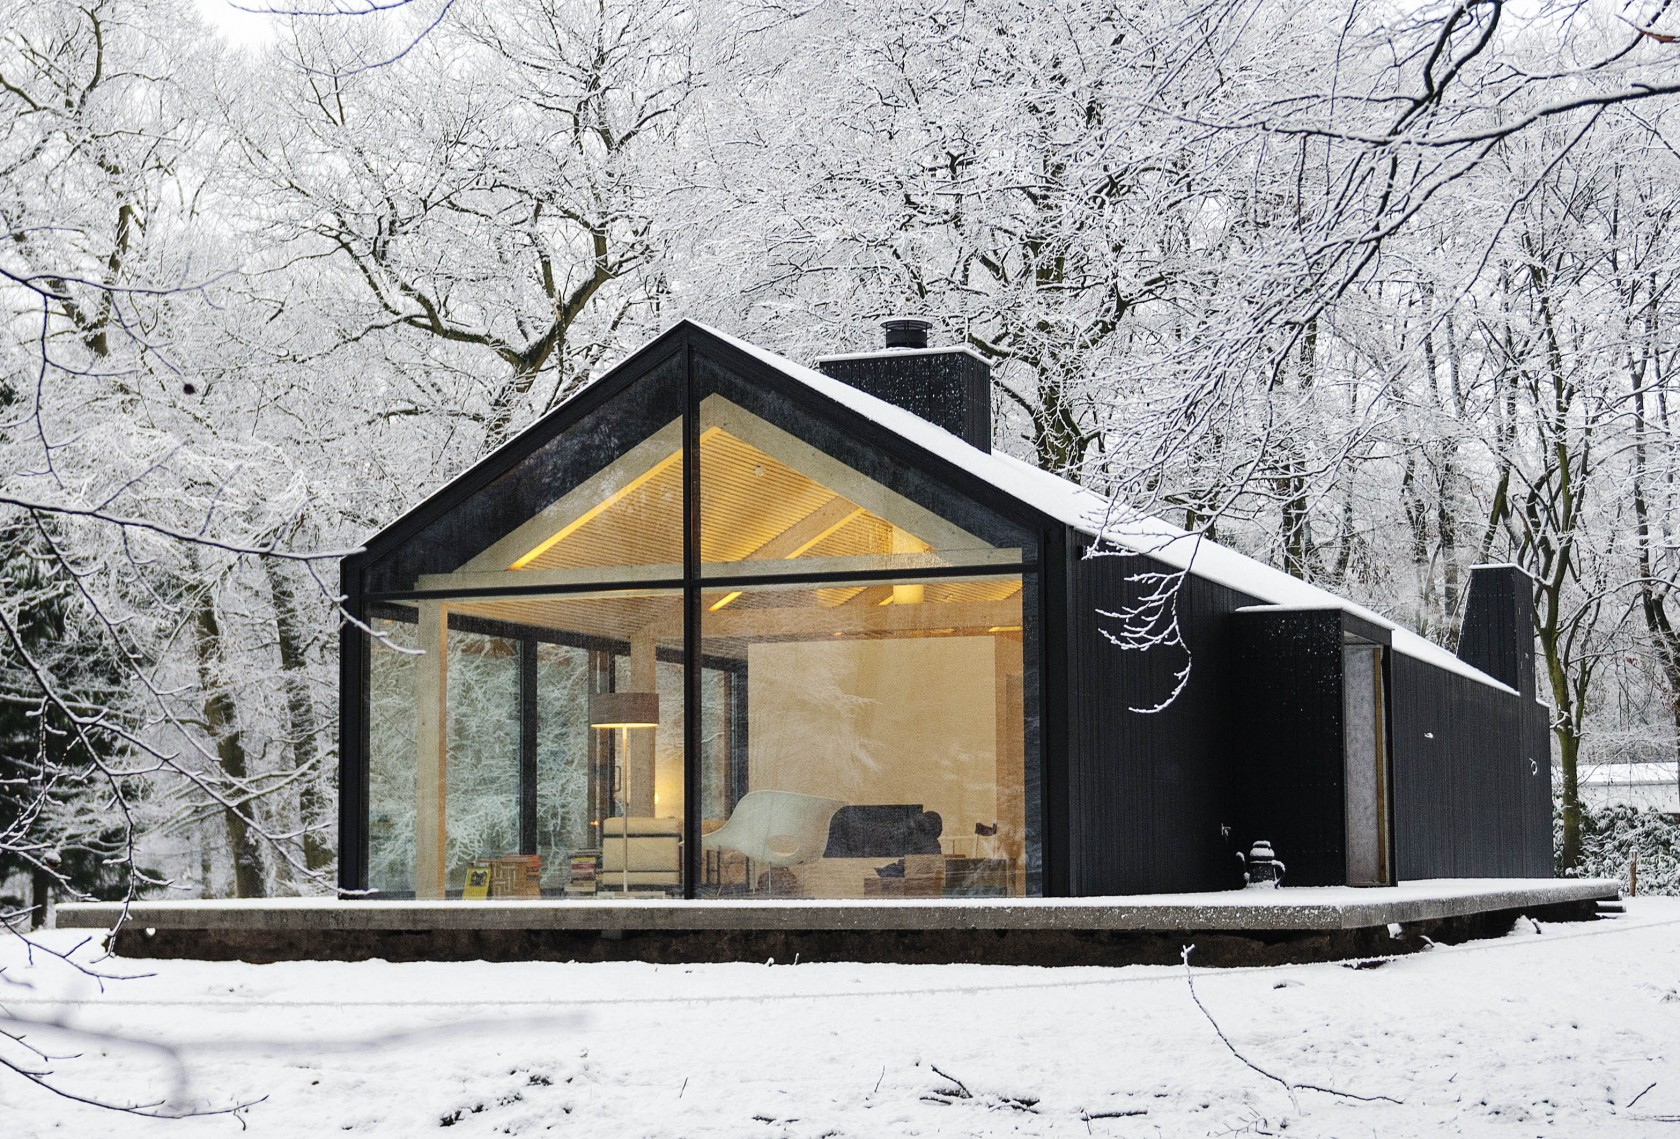 Design Inspiration: Modern Cabin Love